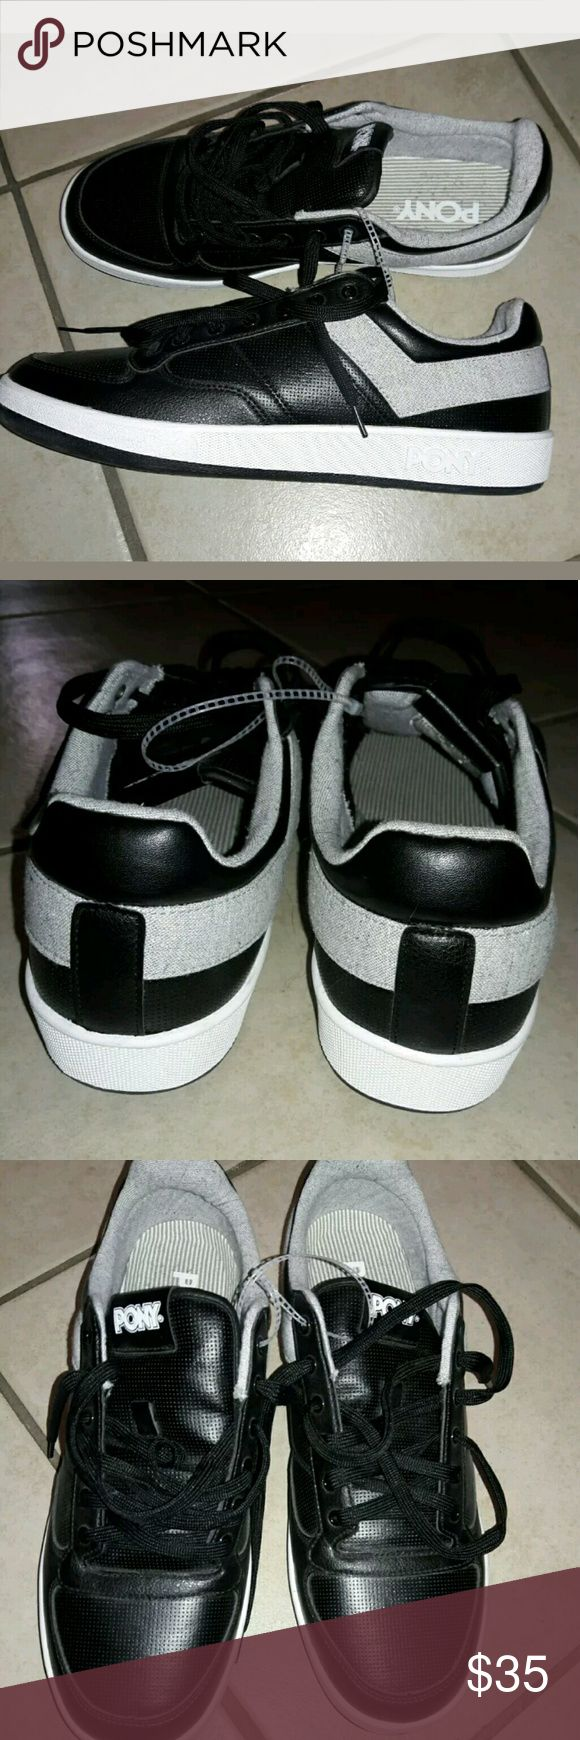 Pony sneakers black size 13 men NEW New vintage style PONY sneakers size 13v brand new in black!! pony Shoes Sneakers